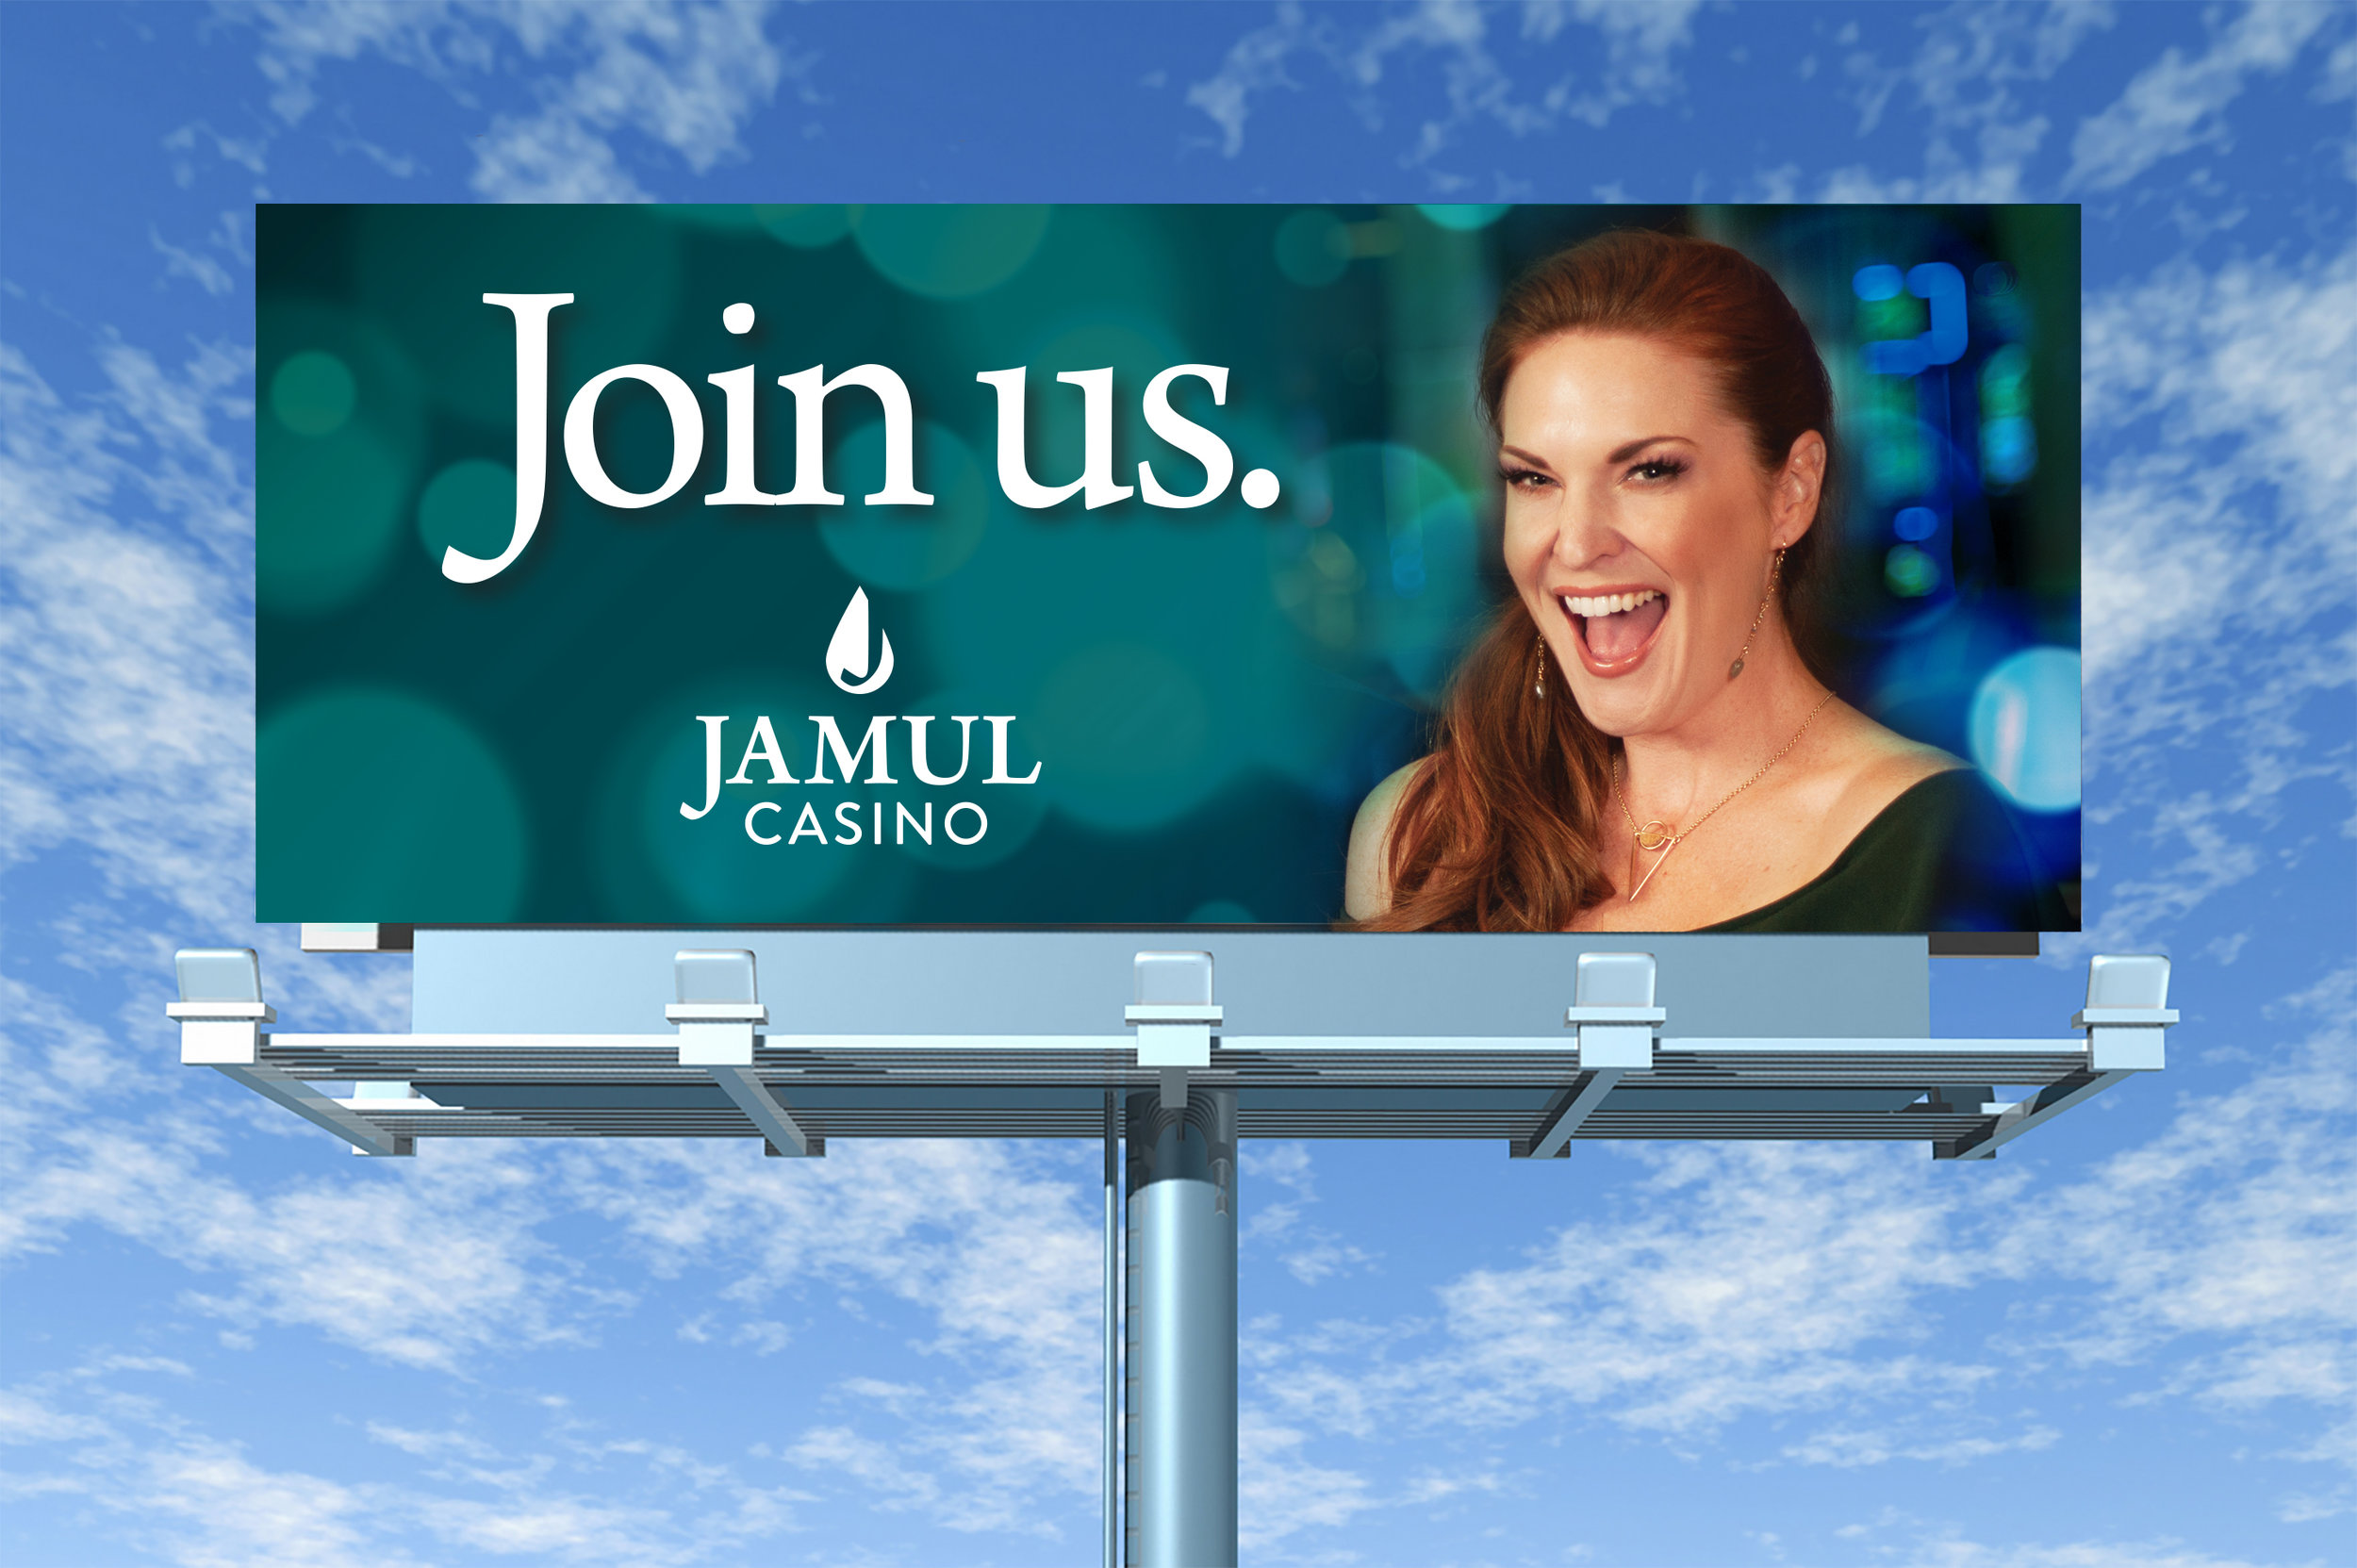 Jamul_Join Us.jpg